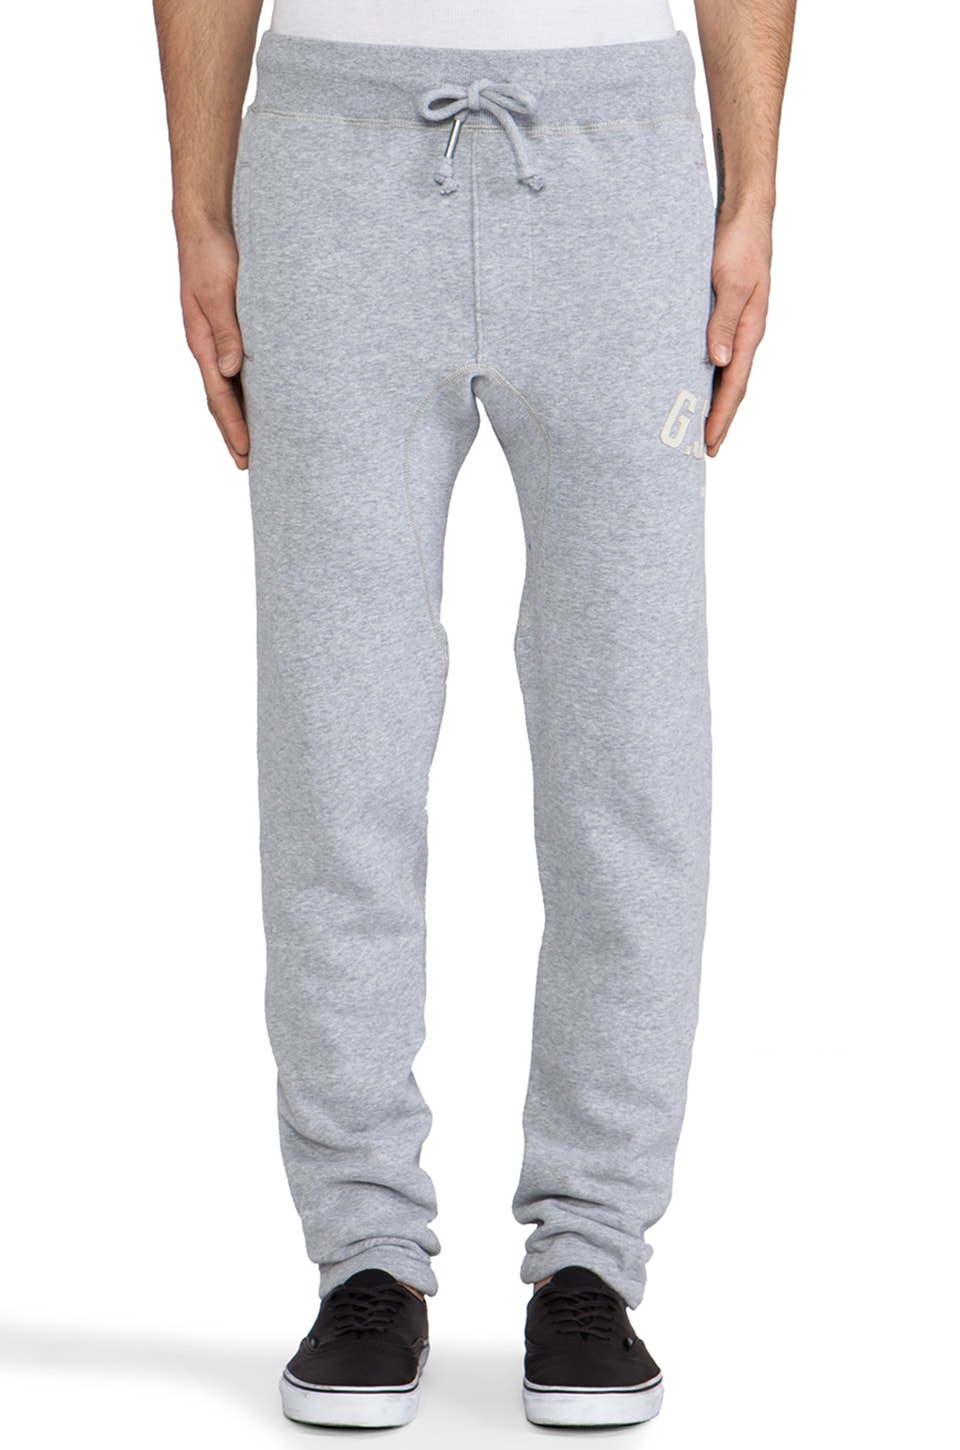 G-Star Rune Sweatpant in Heather Grey